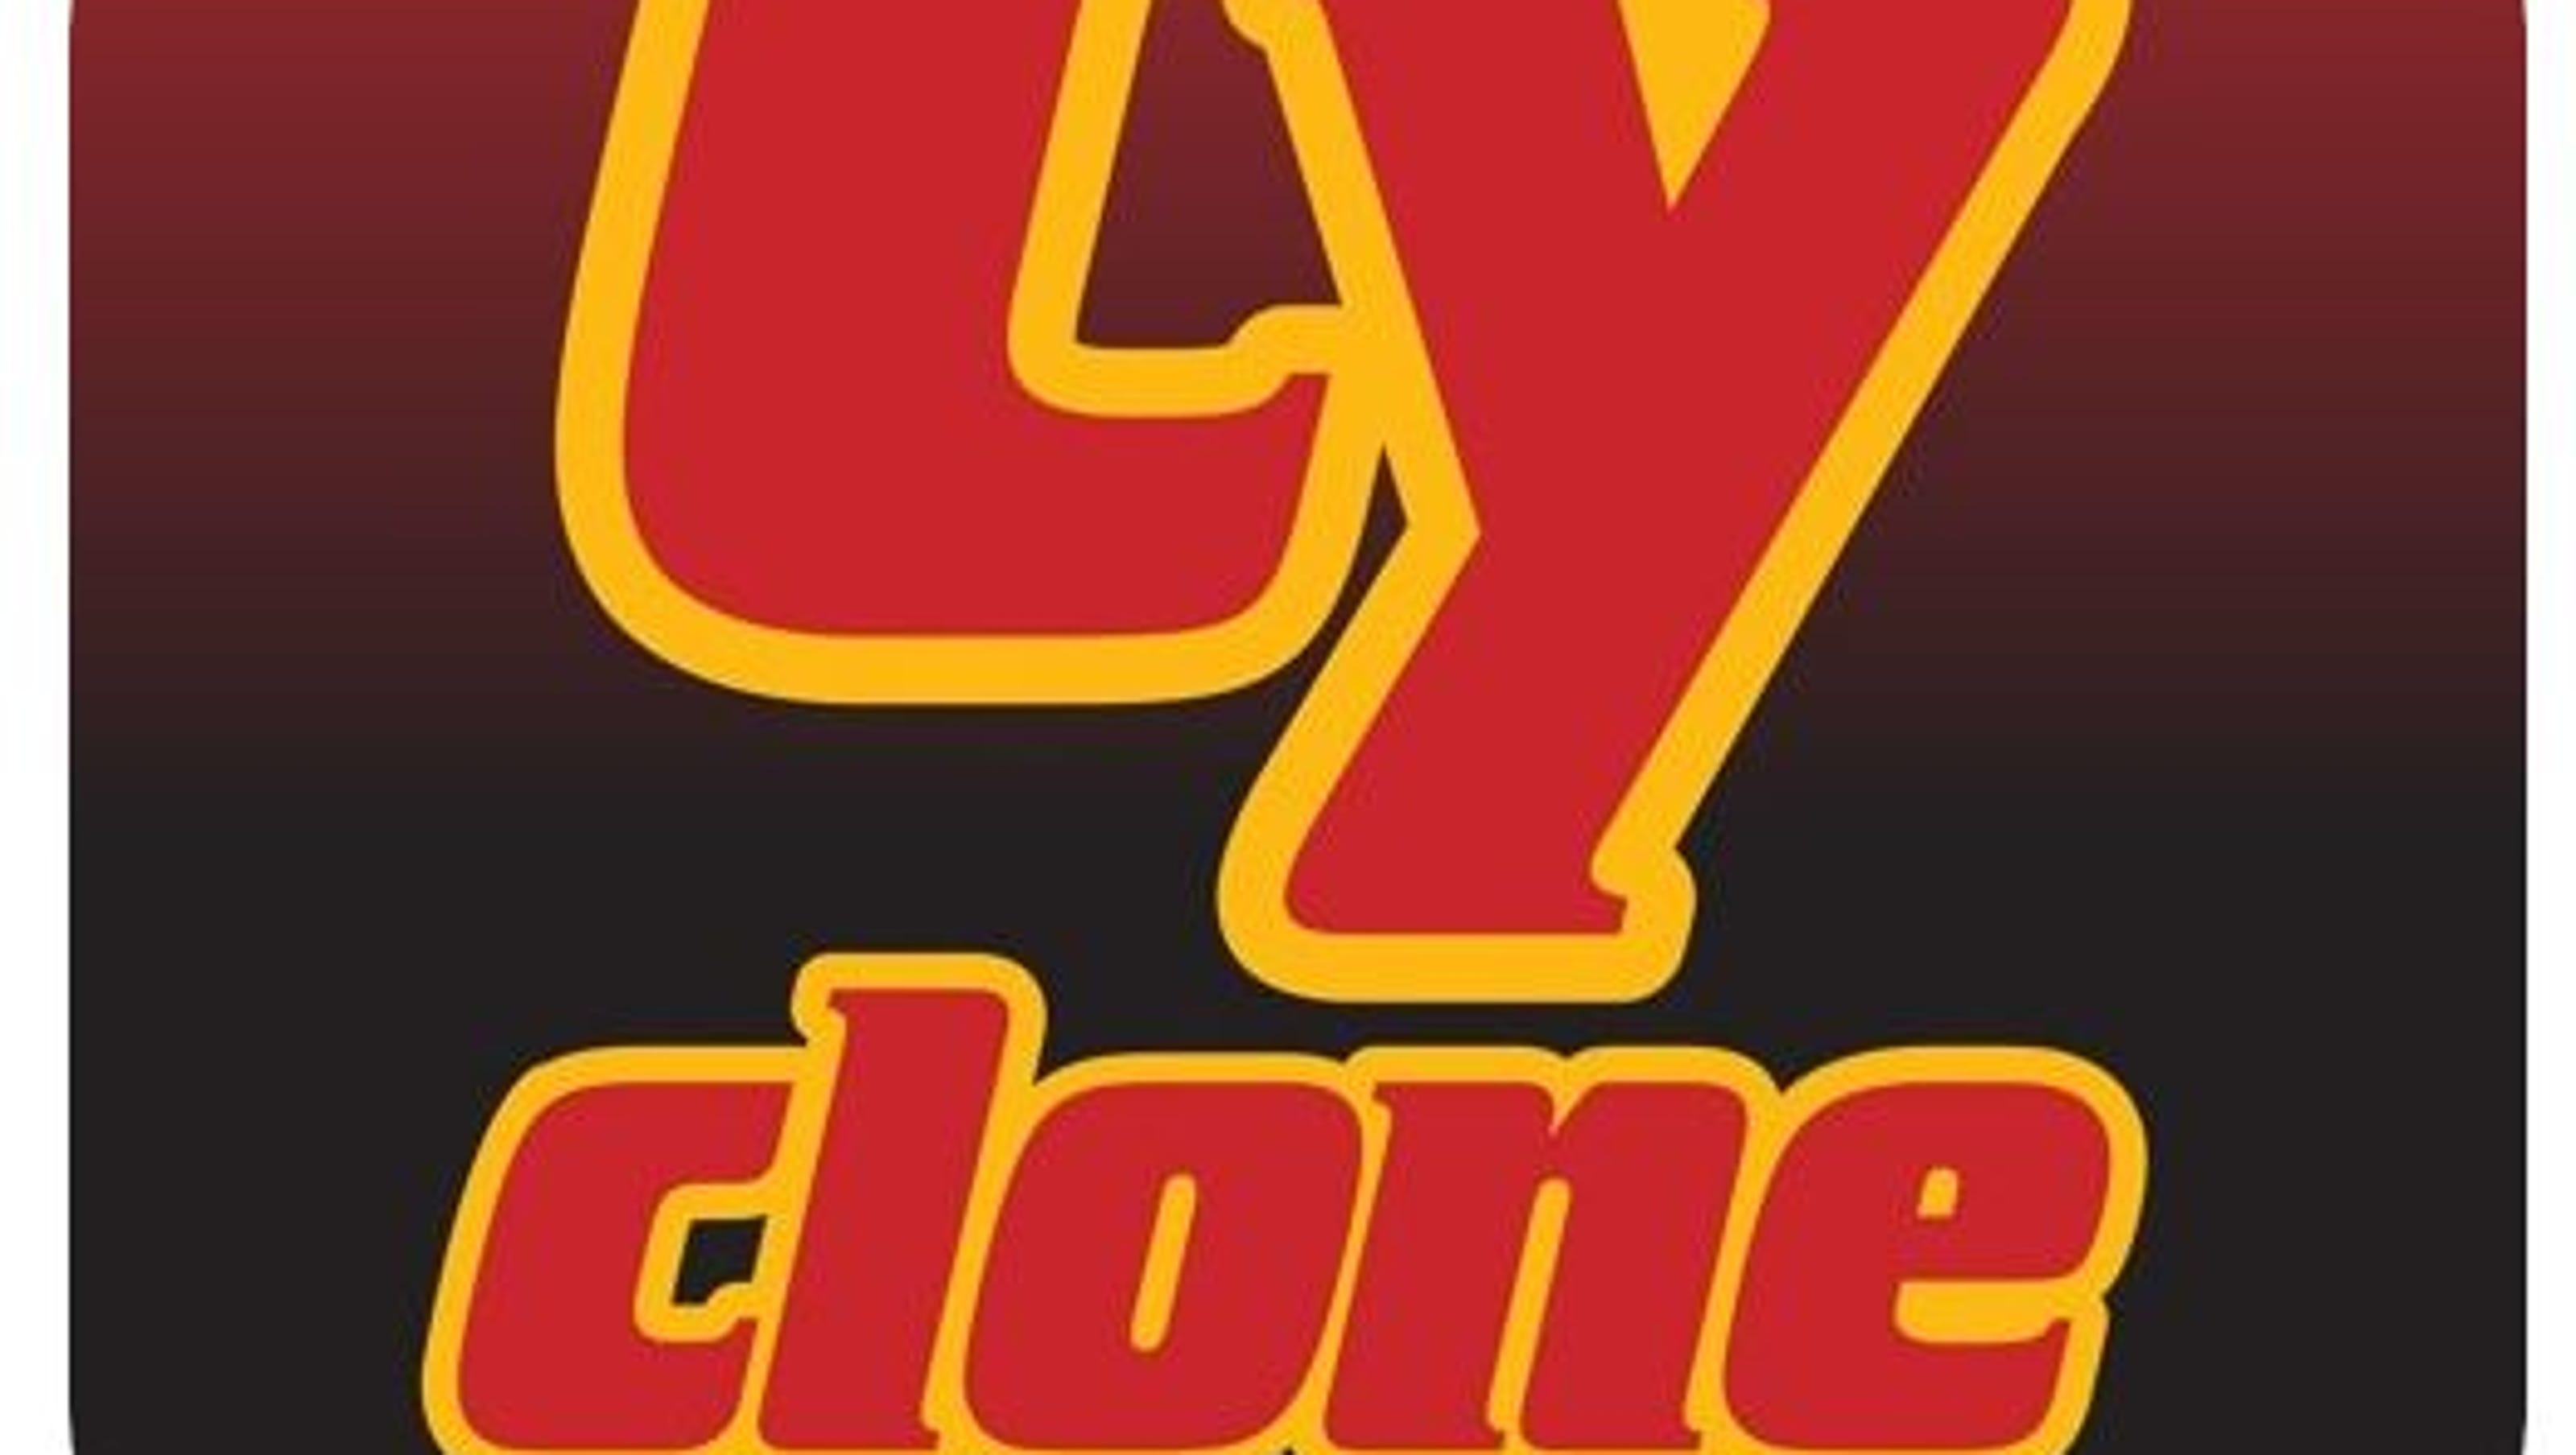 PODCAST: 'Cyclone Insider' breaks down the Big 12 Conference hoops race